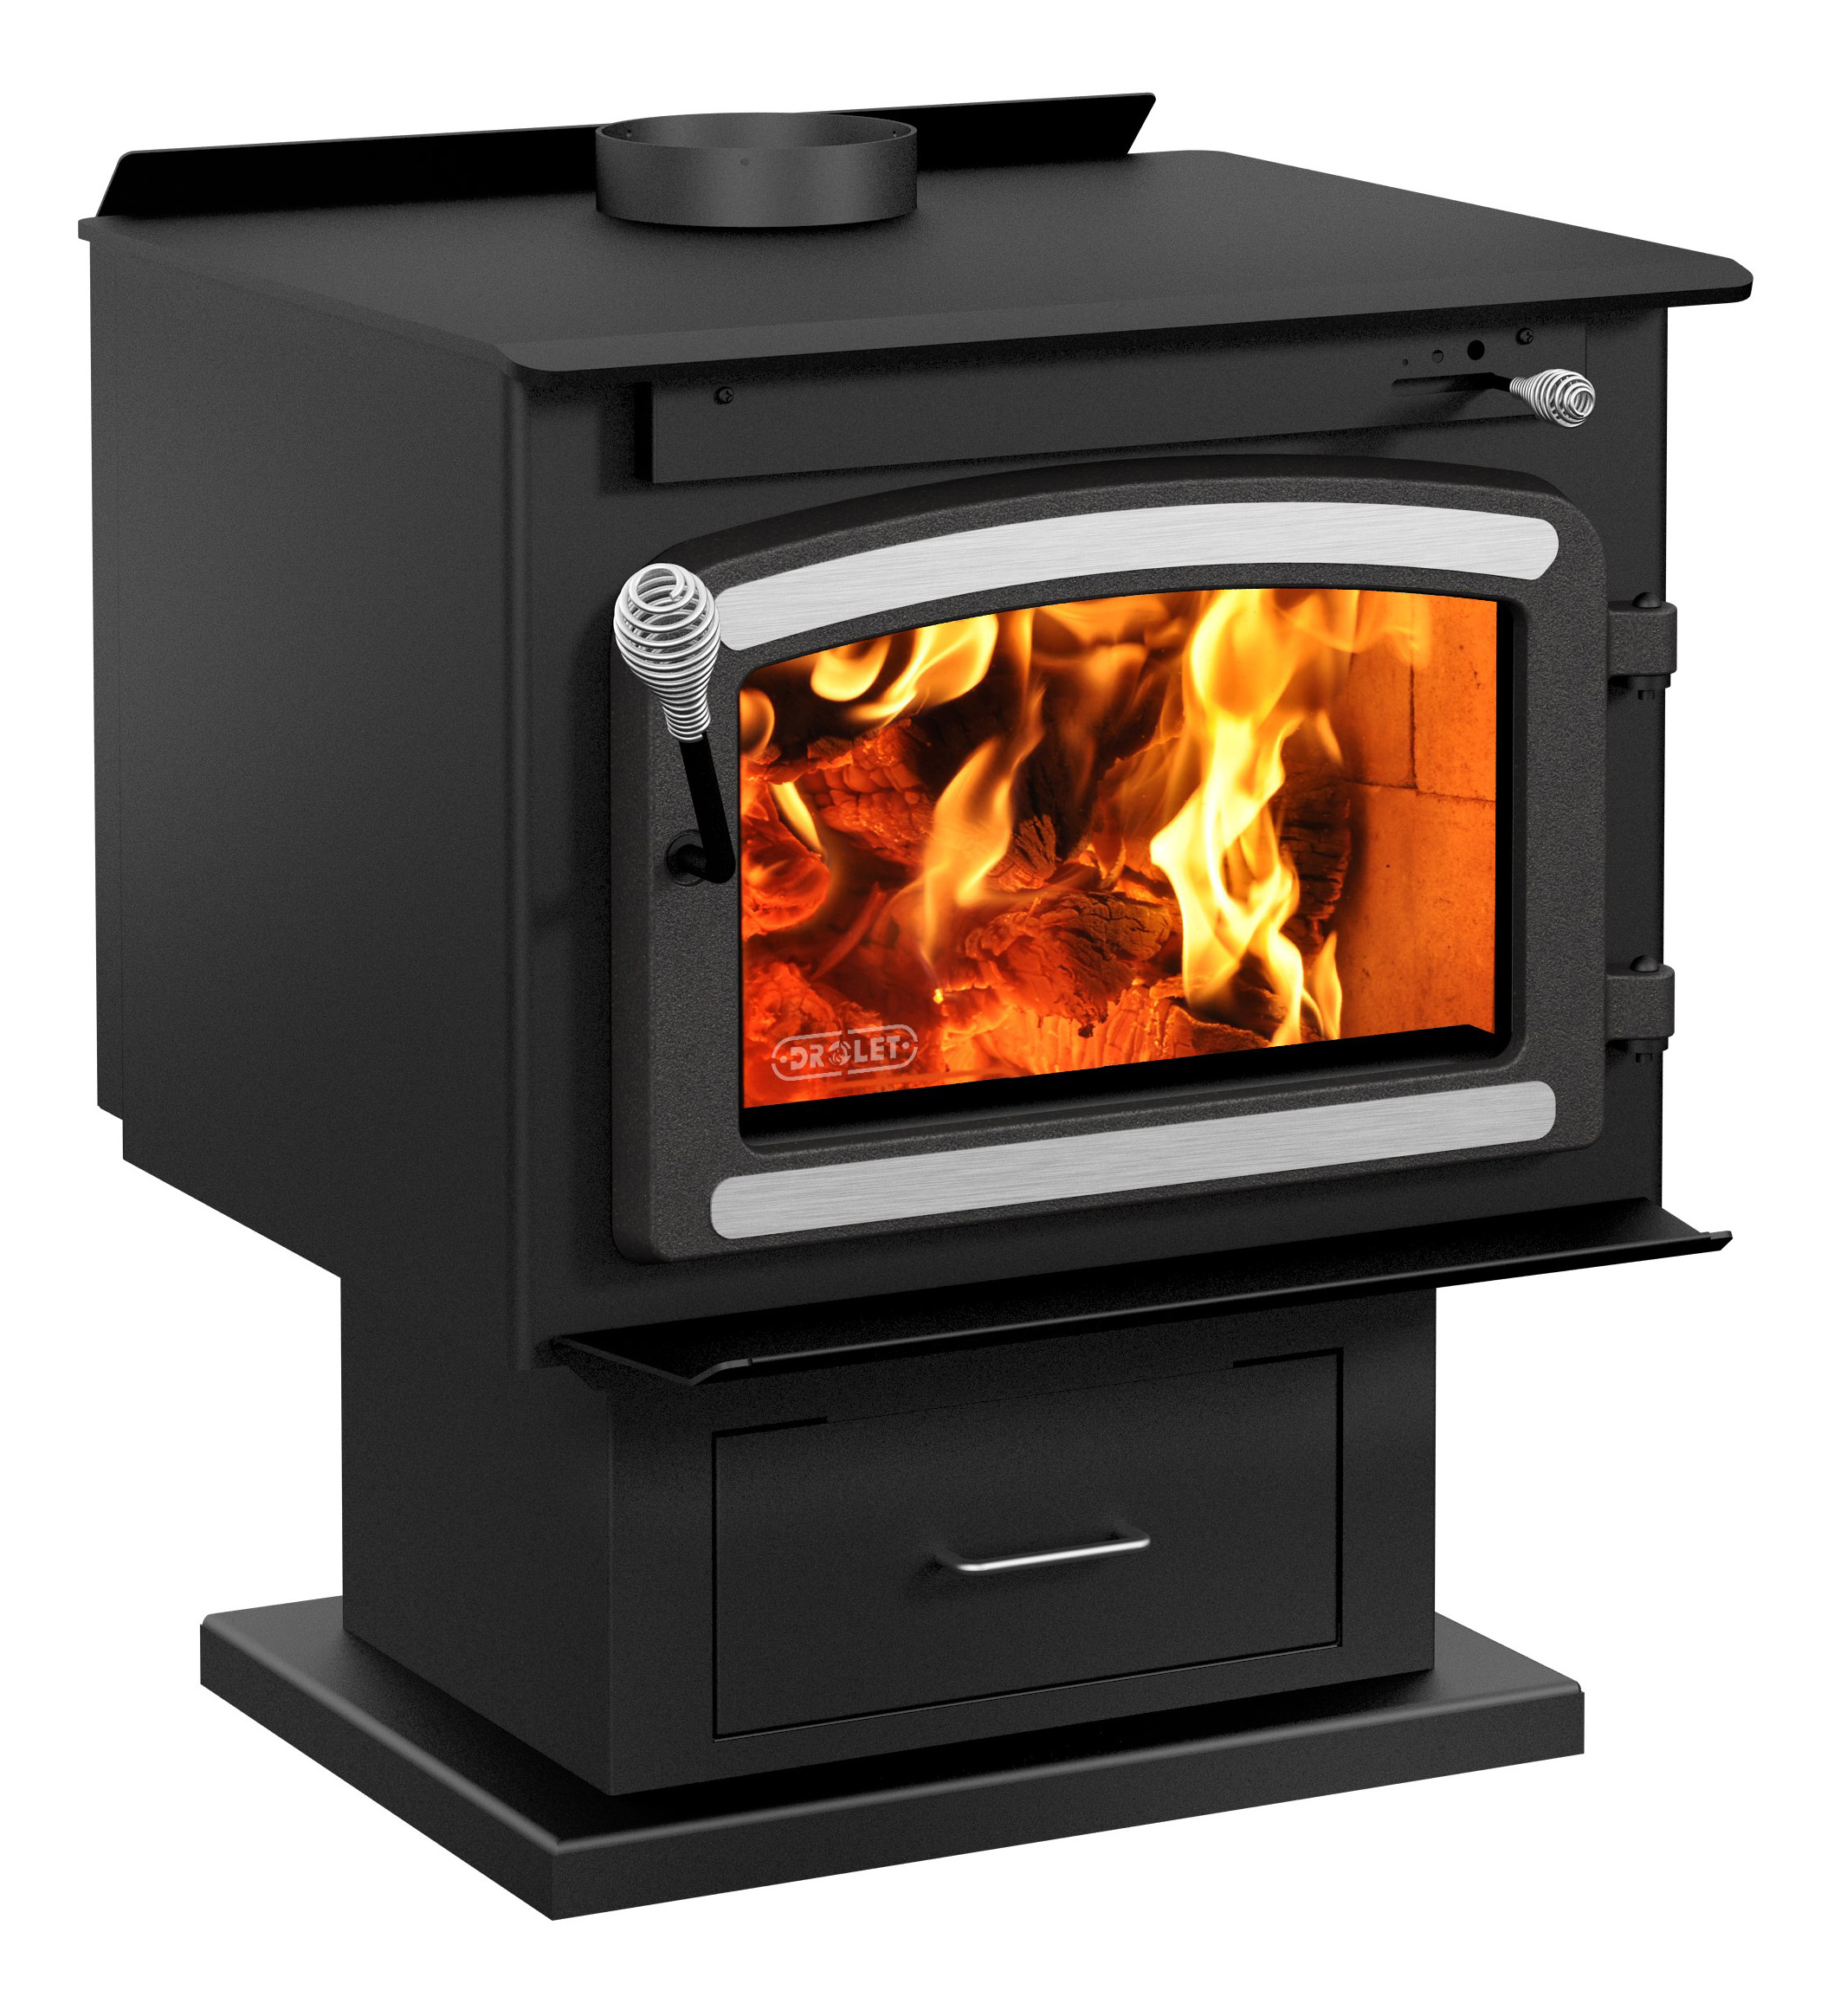 Drolet Classic Wood Stove with Blower - 75,000 BTU, EPA-Certified